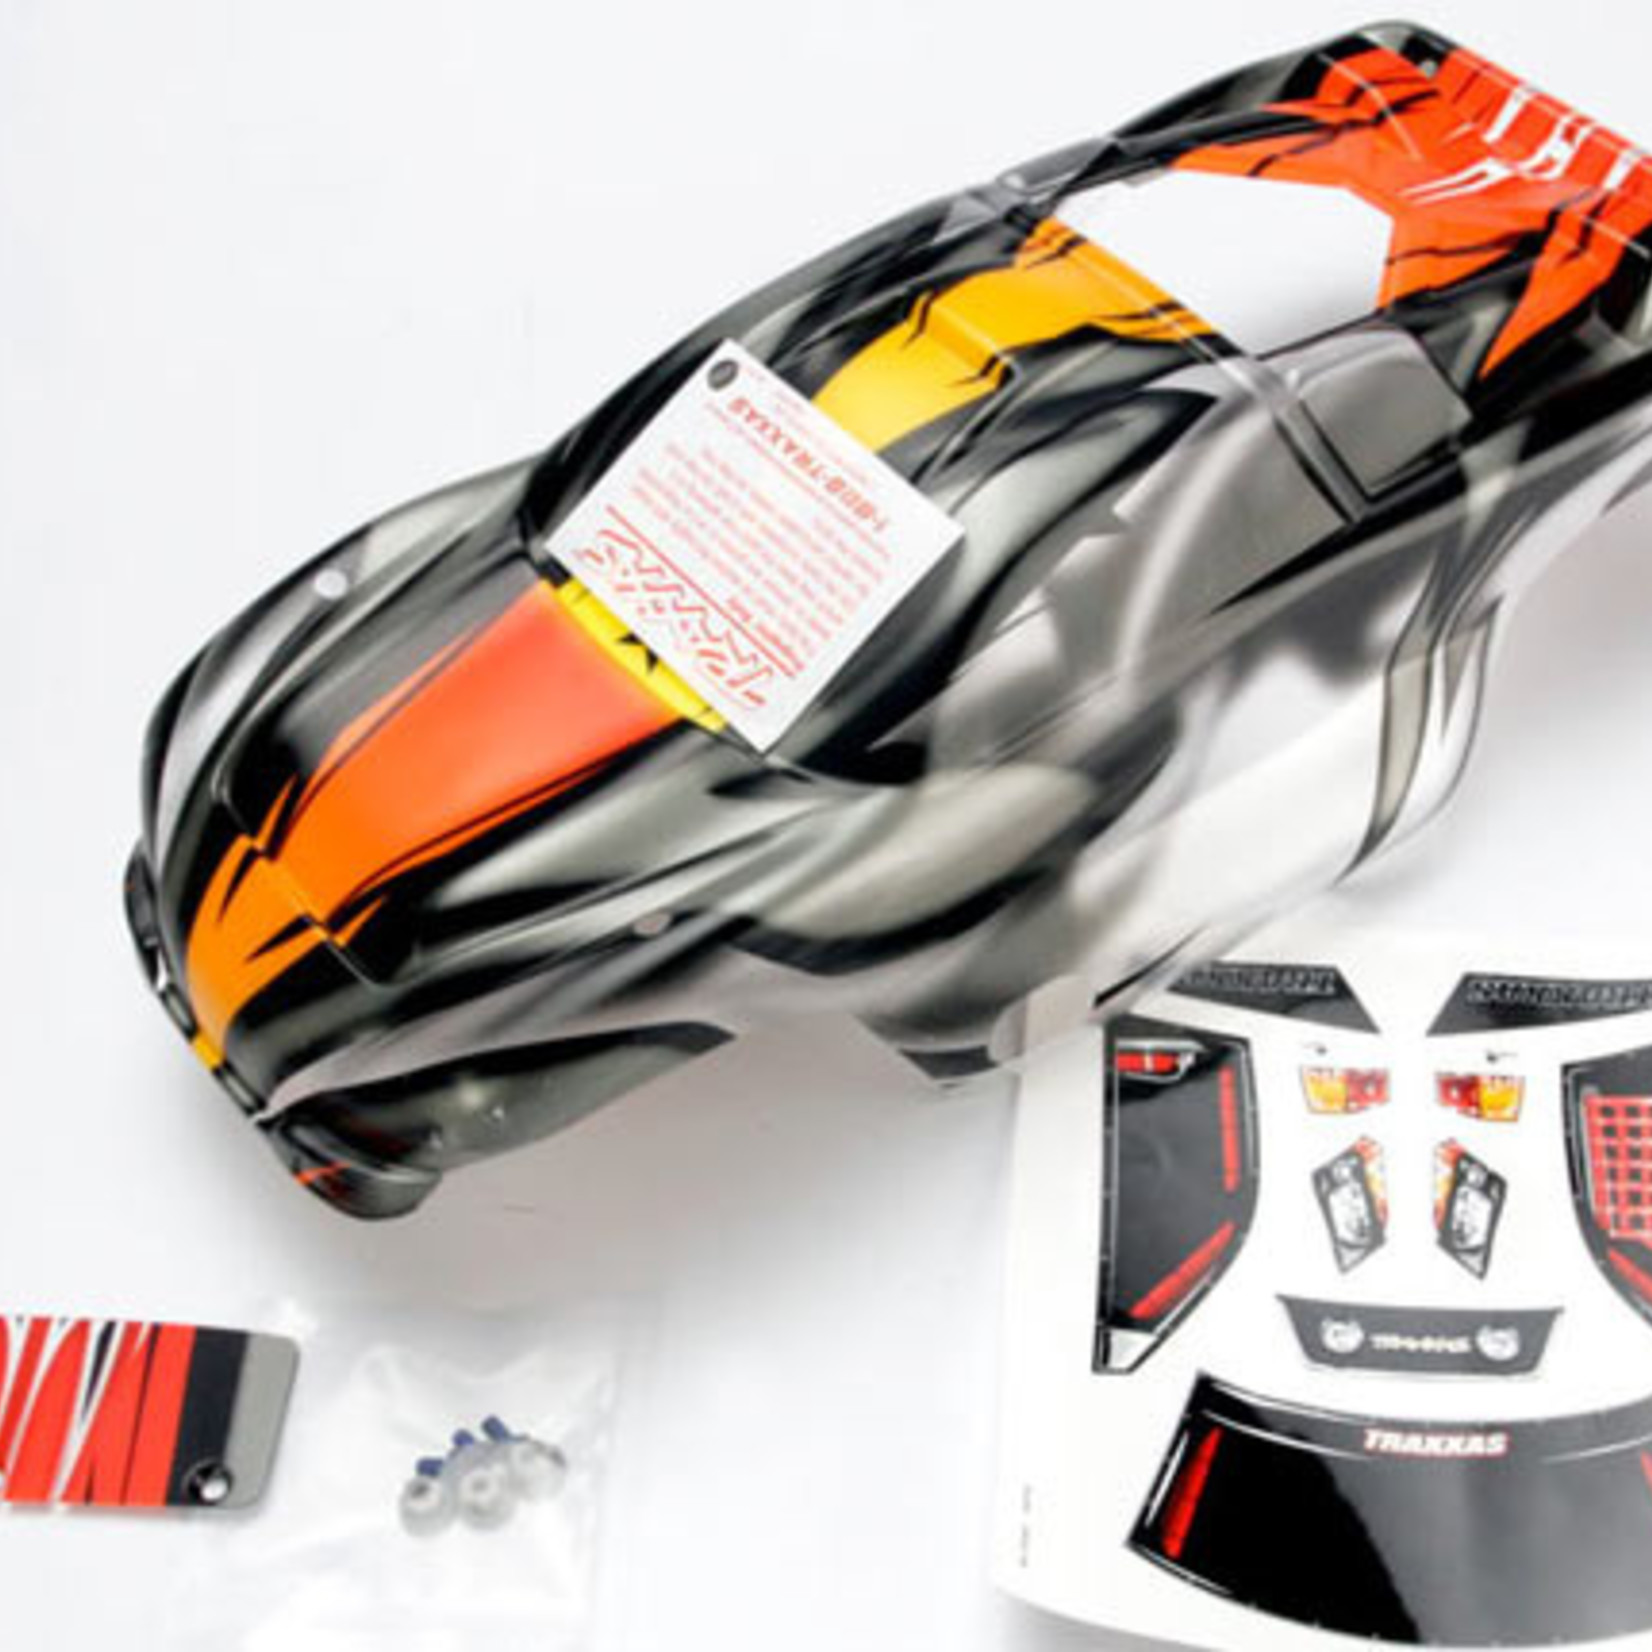 Traxxas TRA4411R Traxxas Body, Nitro Rustler, Prographix (Replacement For The Painted Body. Graphics Are Painted, Requires Paint & Final Color Application.)/Window, Grille, Lights Decal Sheet/ Wing And Aluminum Hardware